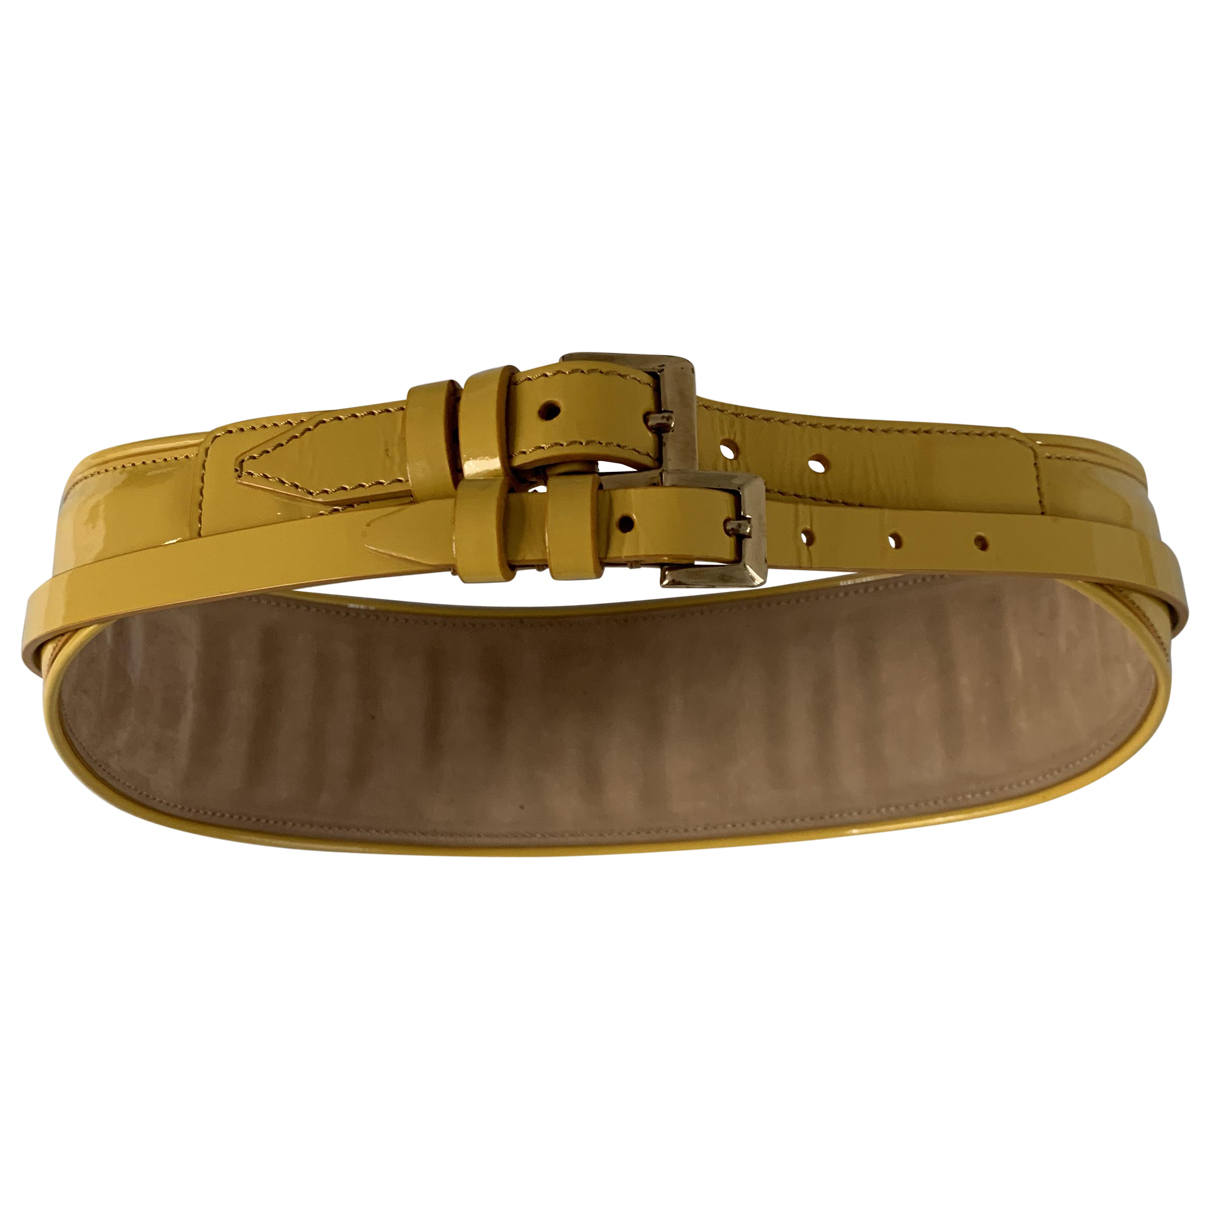 Burberry \N Yellow Patent leather belt for Women 80 cm